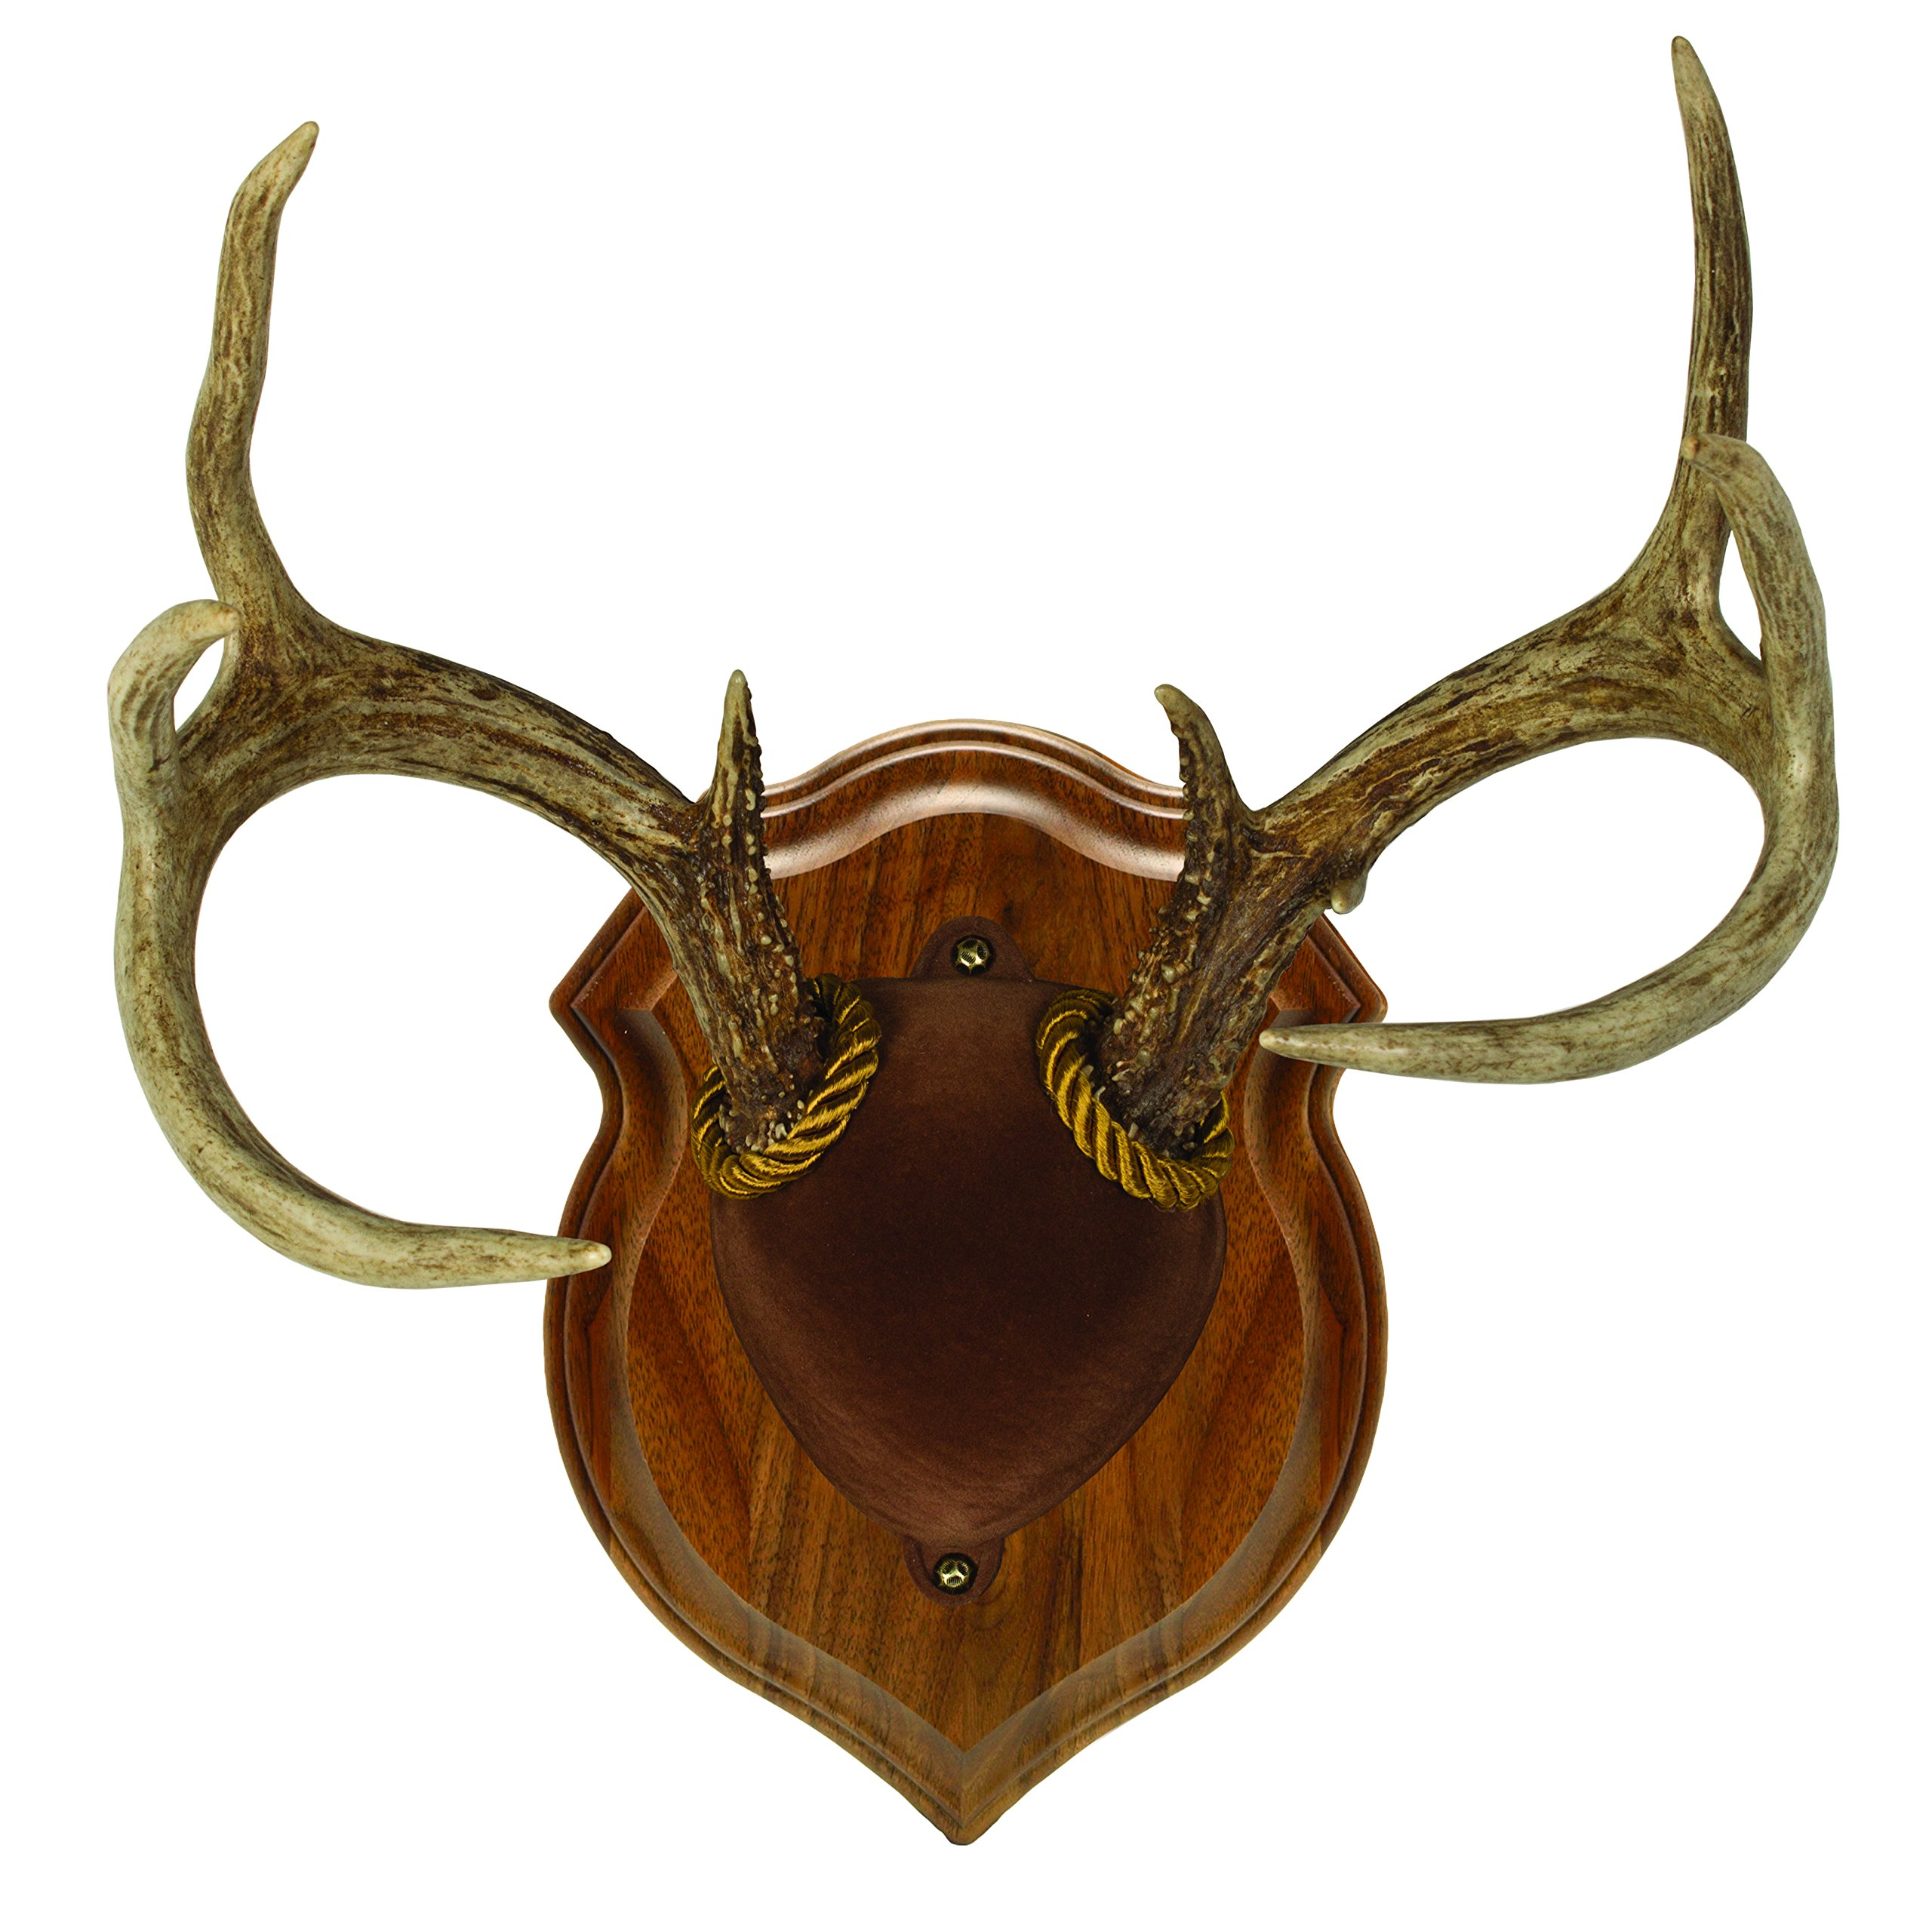 Walnut Hollow Country Deluxe Antler Display Mounting Kit in Solid Walnut for Mule Deer & Whitetail Deer by Walnut Hollow Country